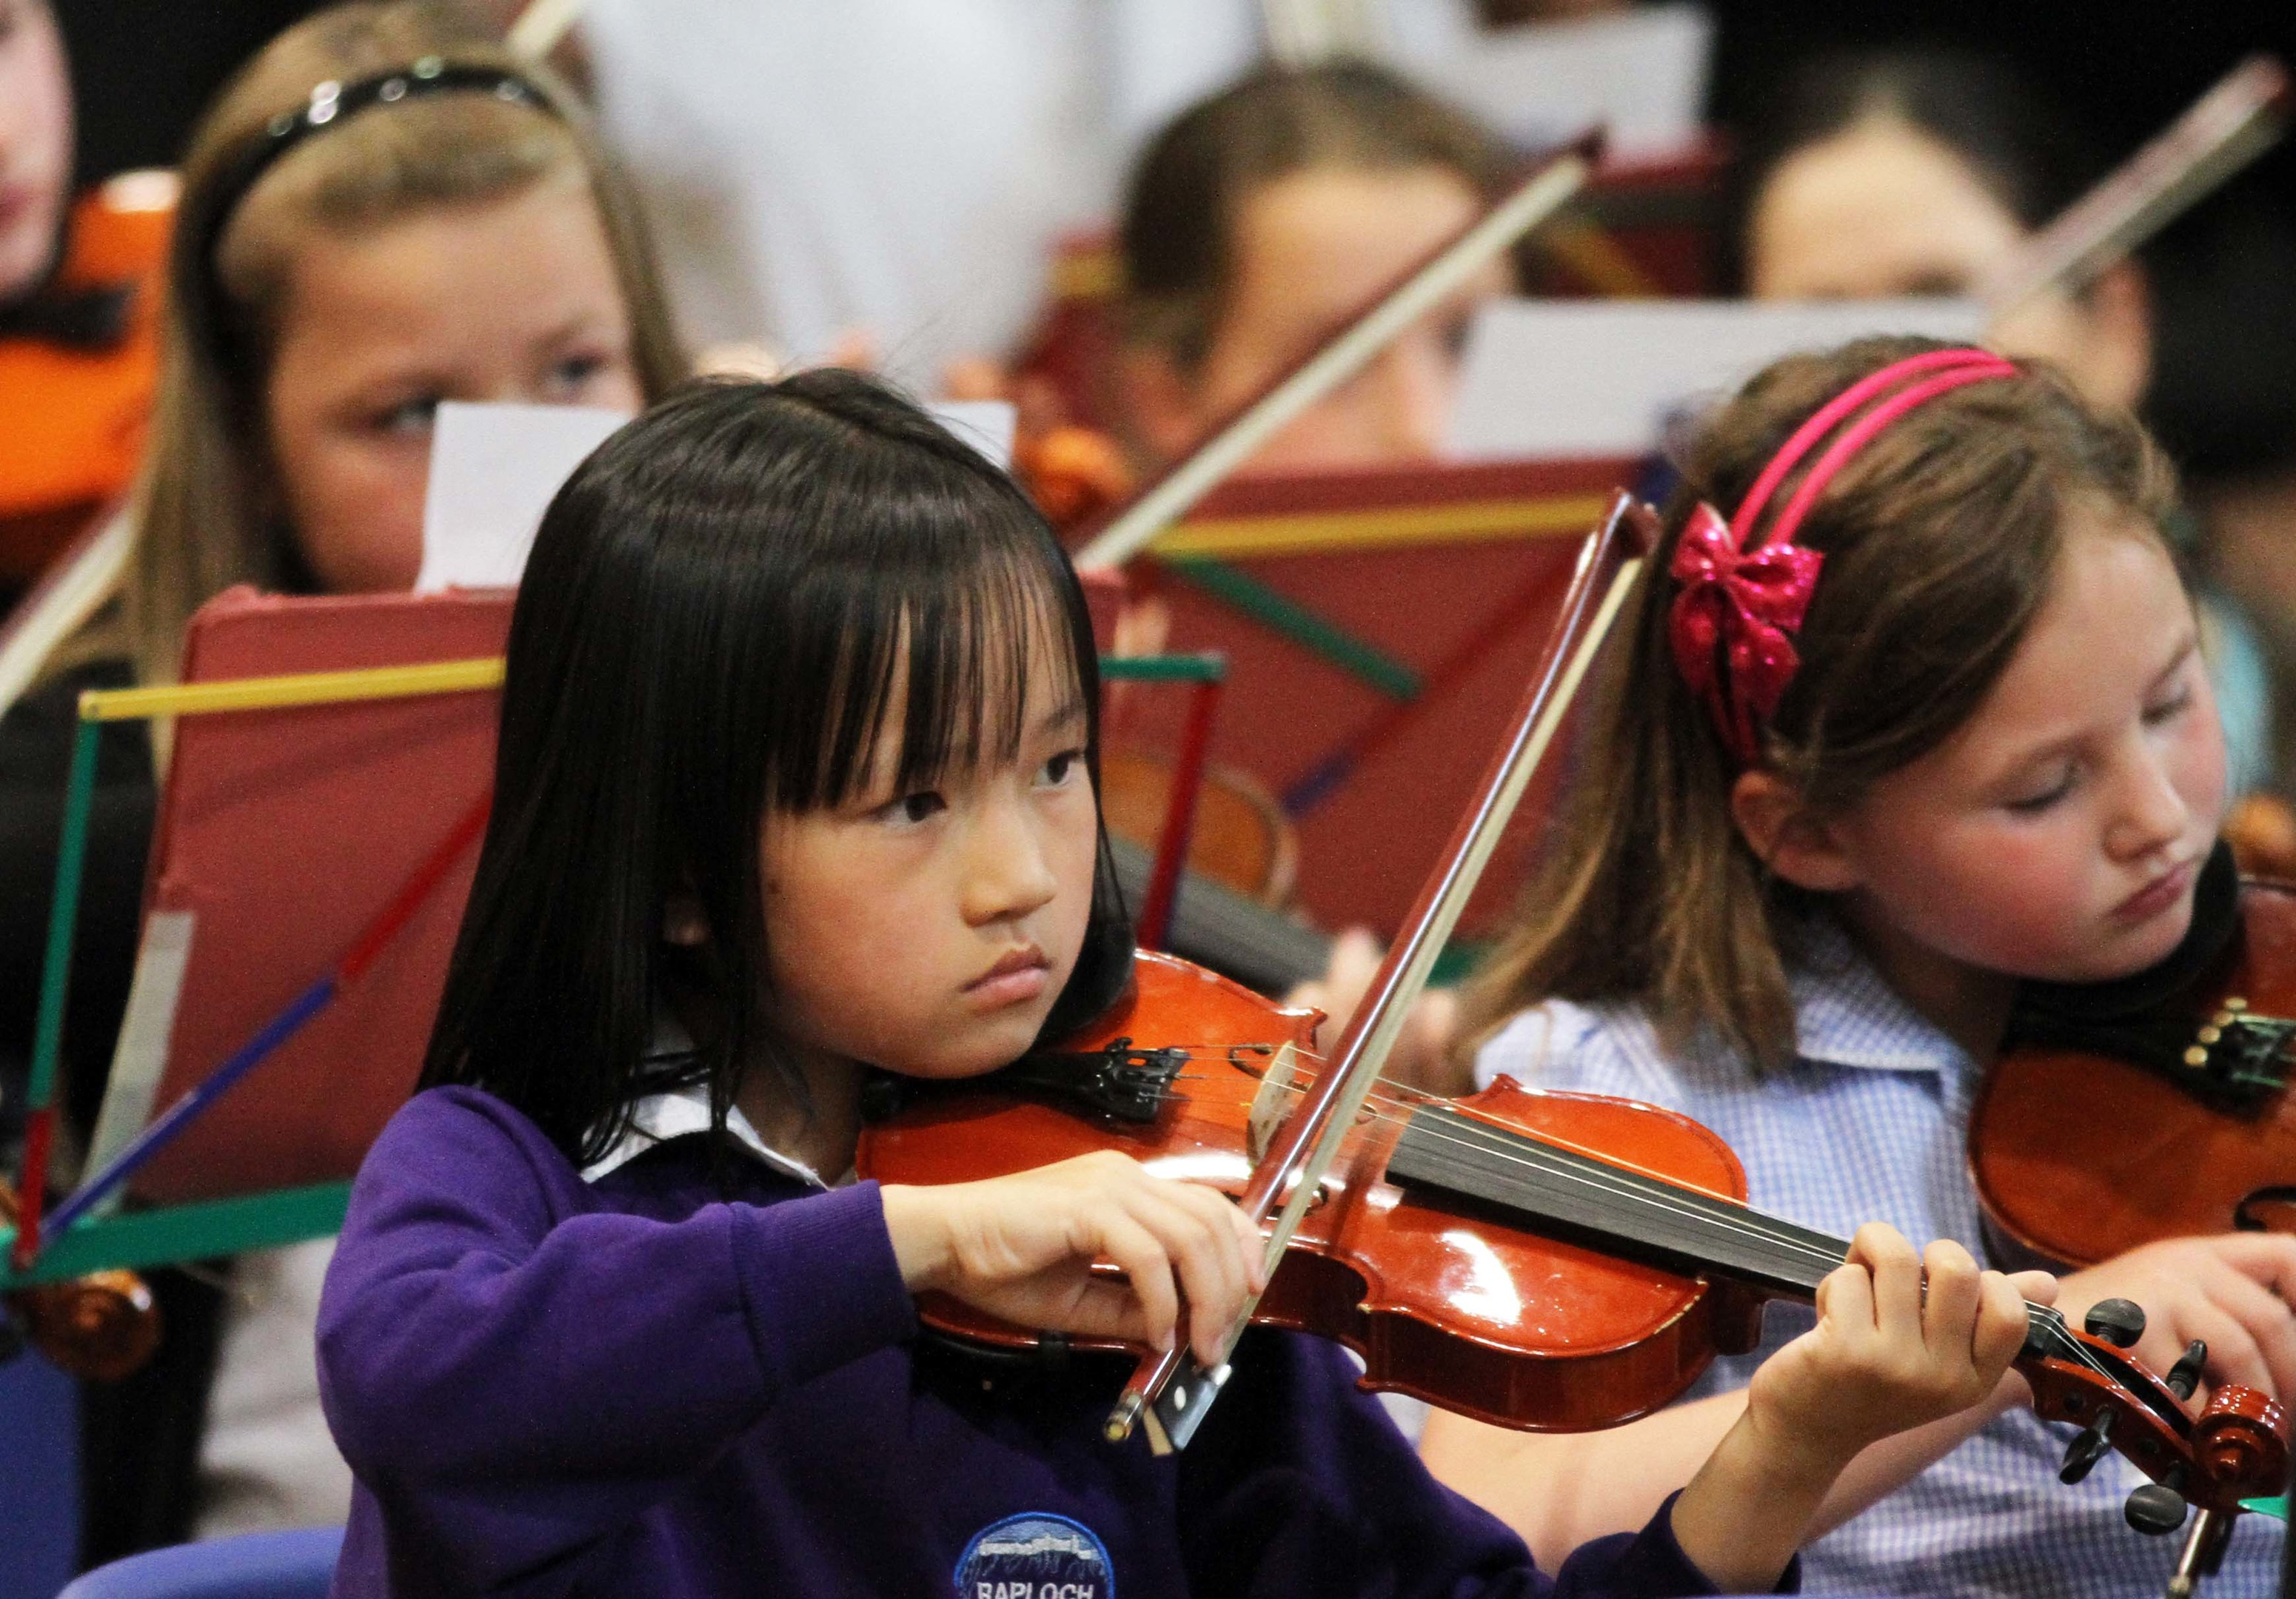 Sistema Scotland's Big Noise Orchestra has had a transformative effect upon youngsters in Stirling's Raploch area. It is hoped Bid Noise Douglas will be every bit as successful.